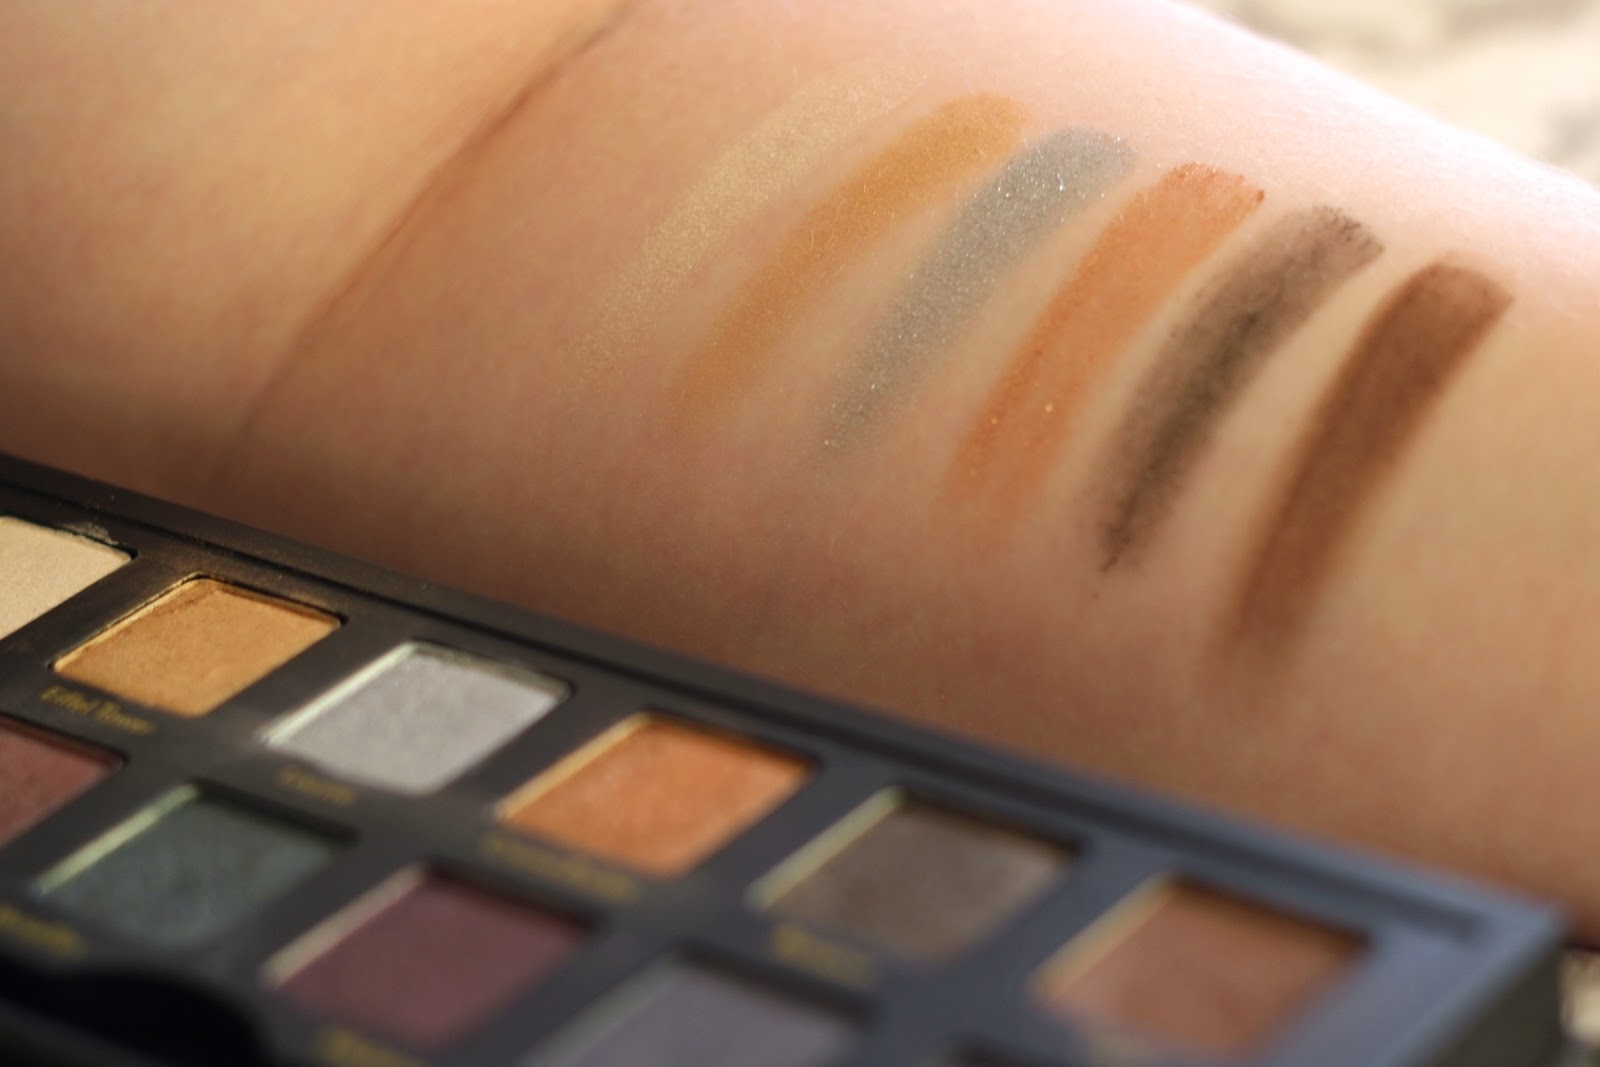 Cargo Cosmetics Let's Meet In Paris Eyeshadow Palette Swatches